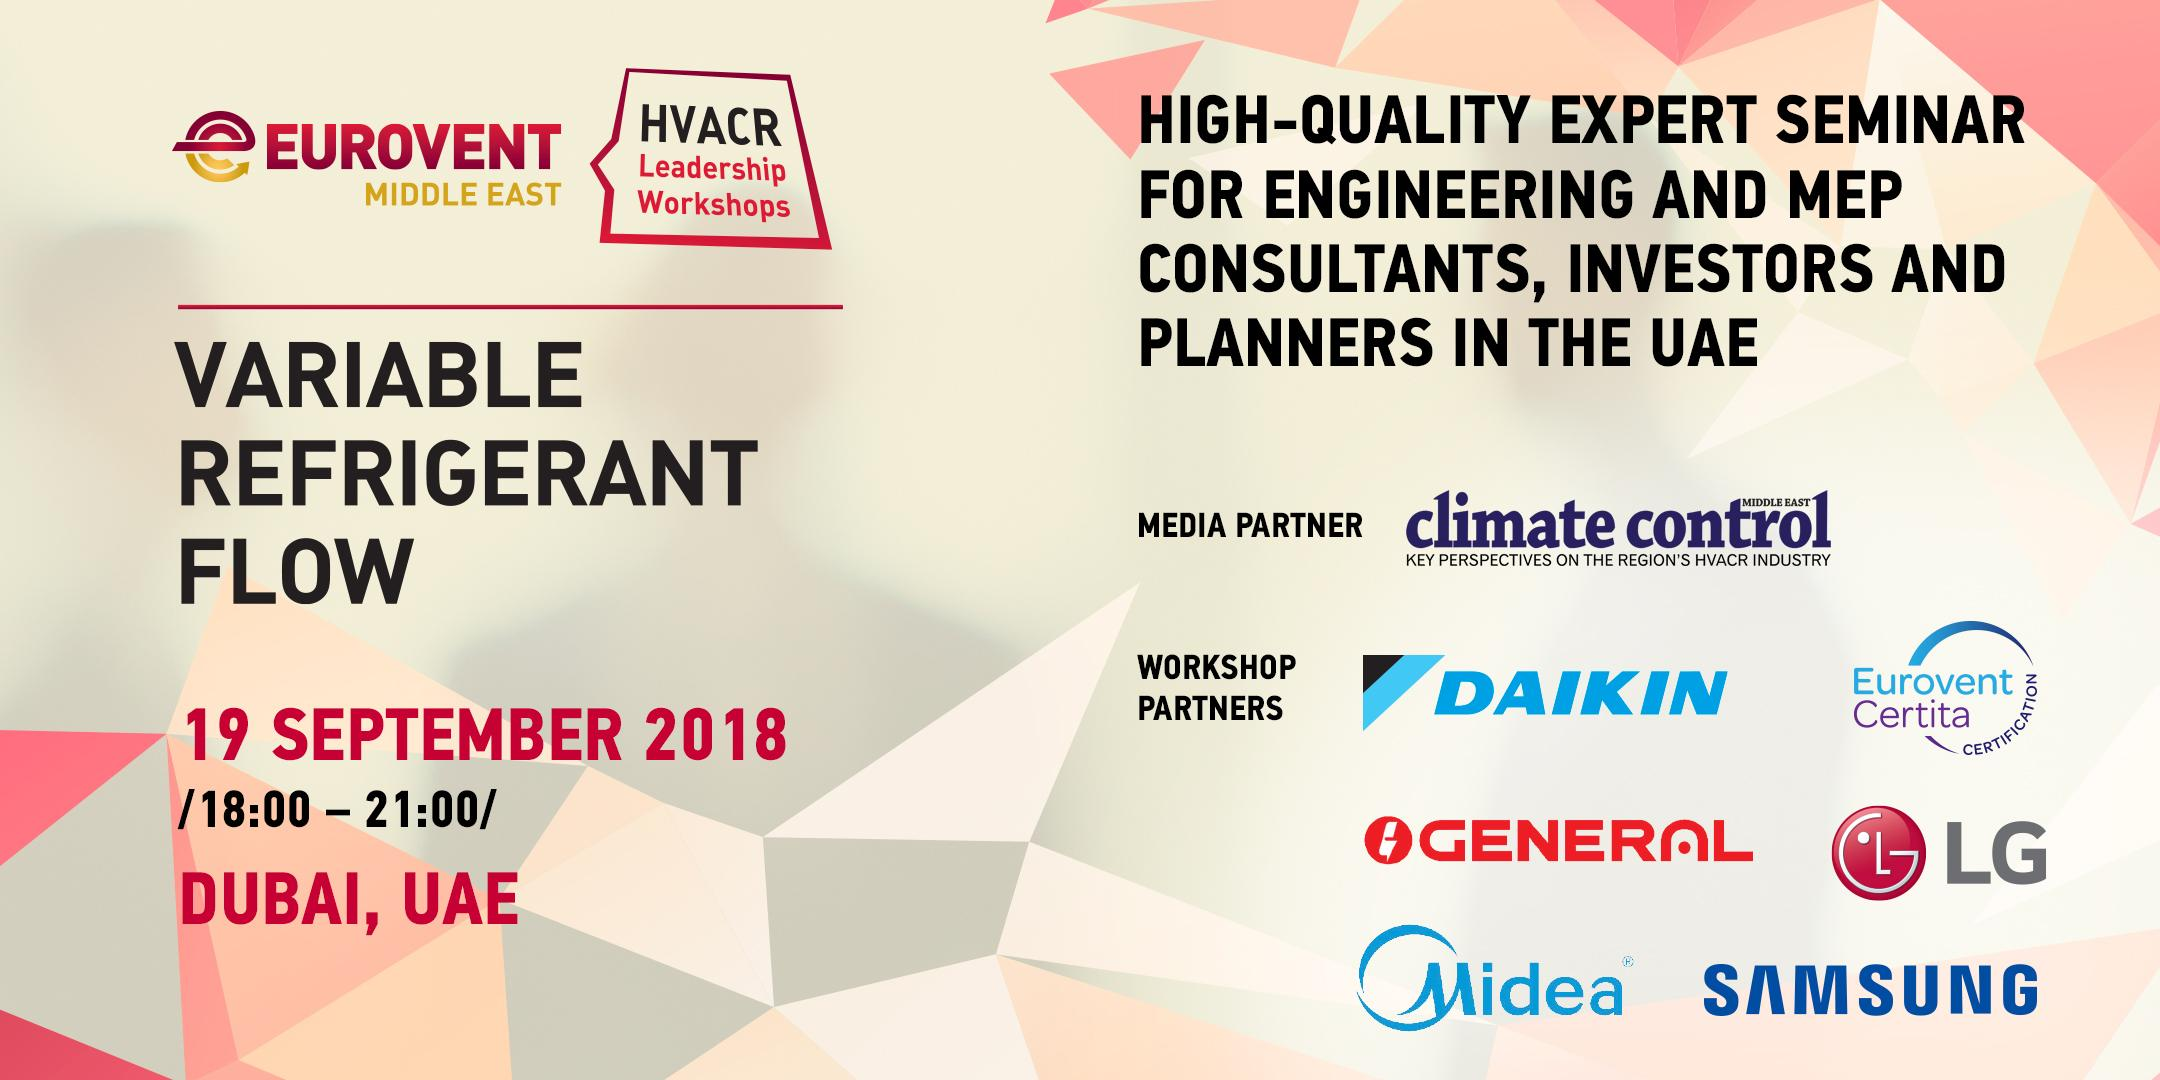 2018 - HVACR Leadership Workshops by Eurovent Middle East - VRF